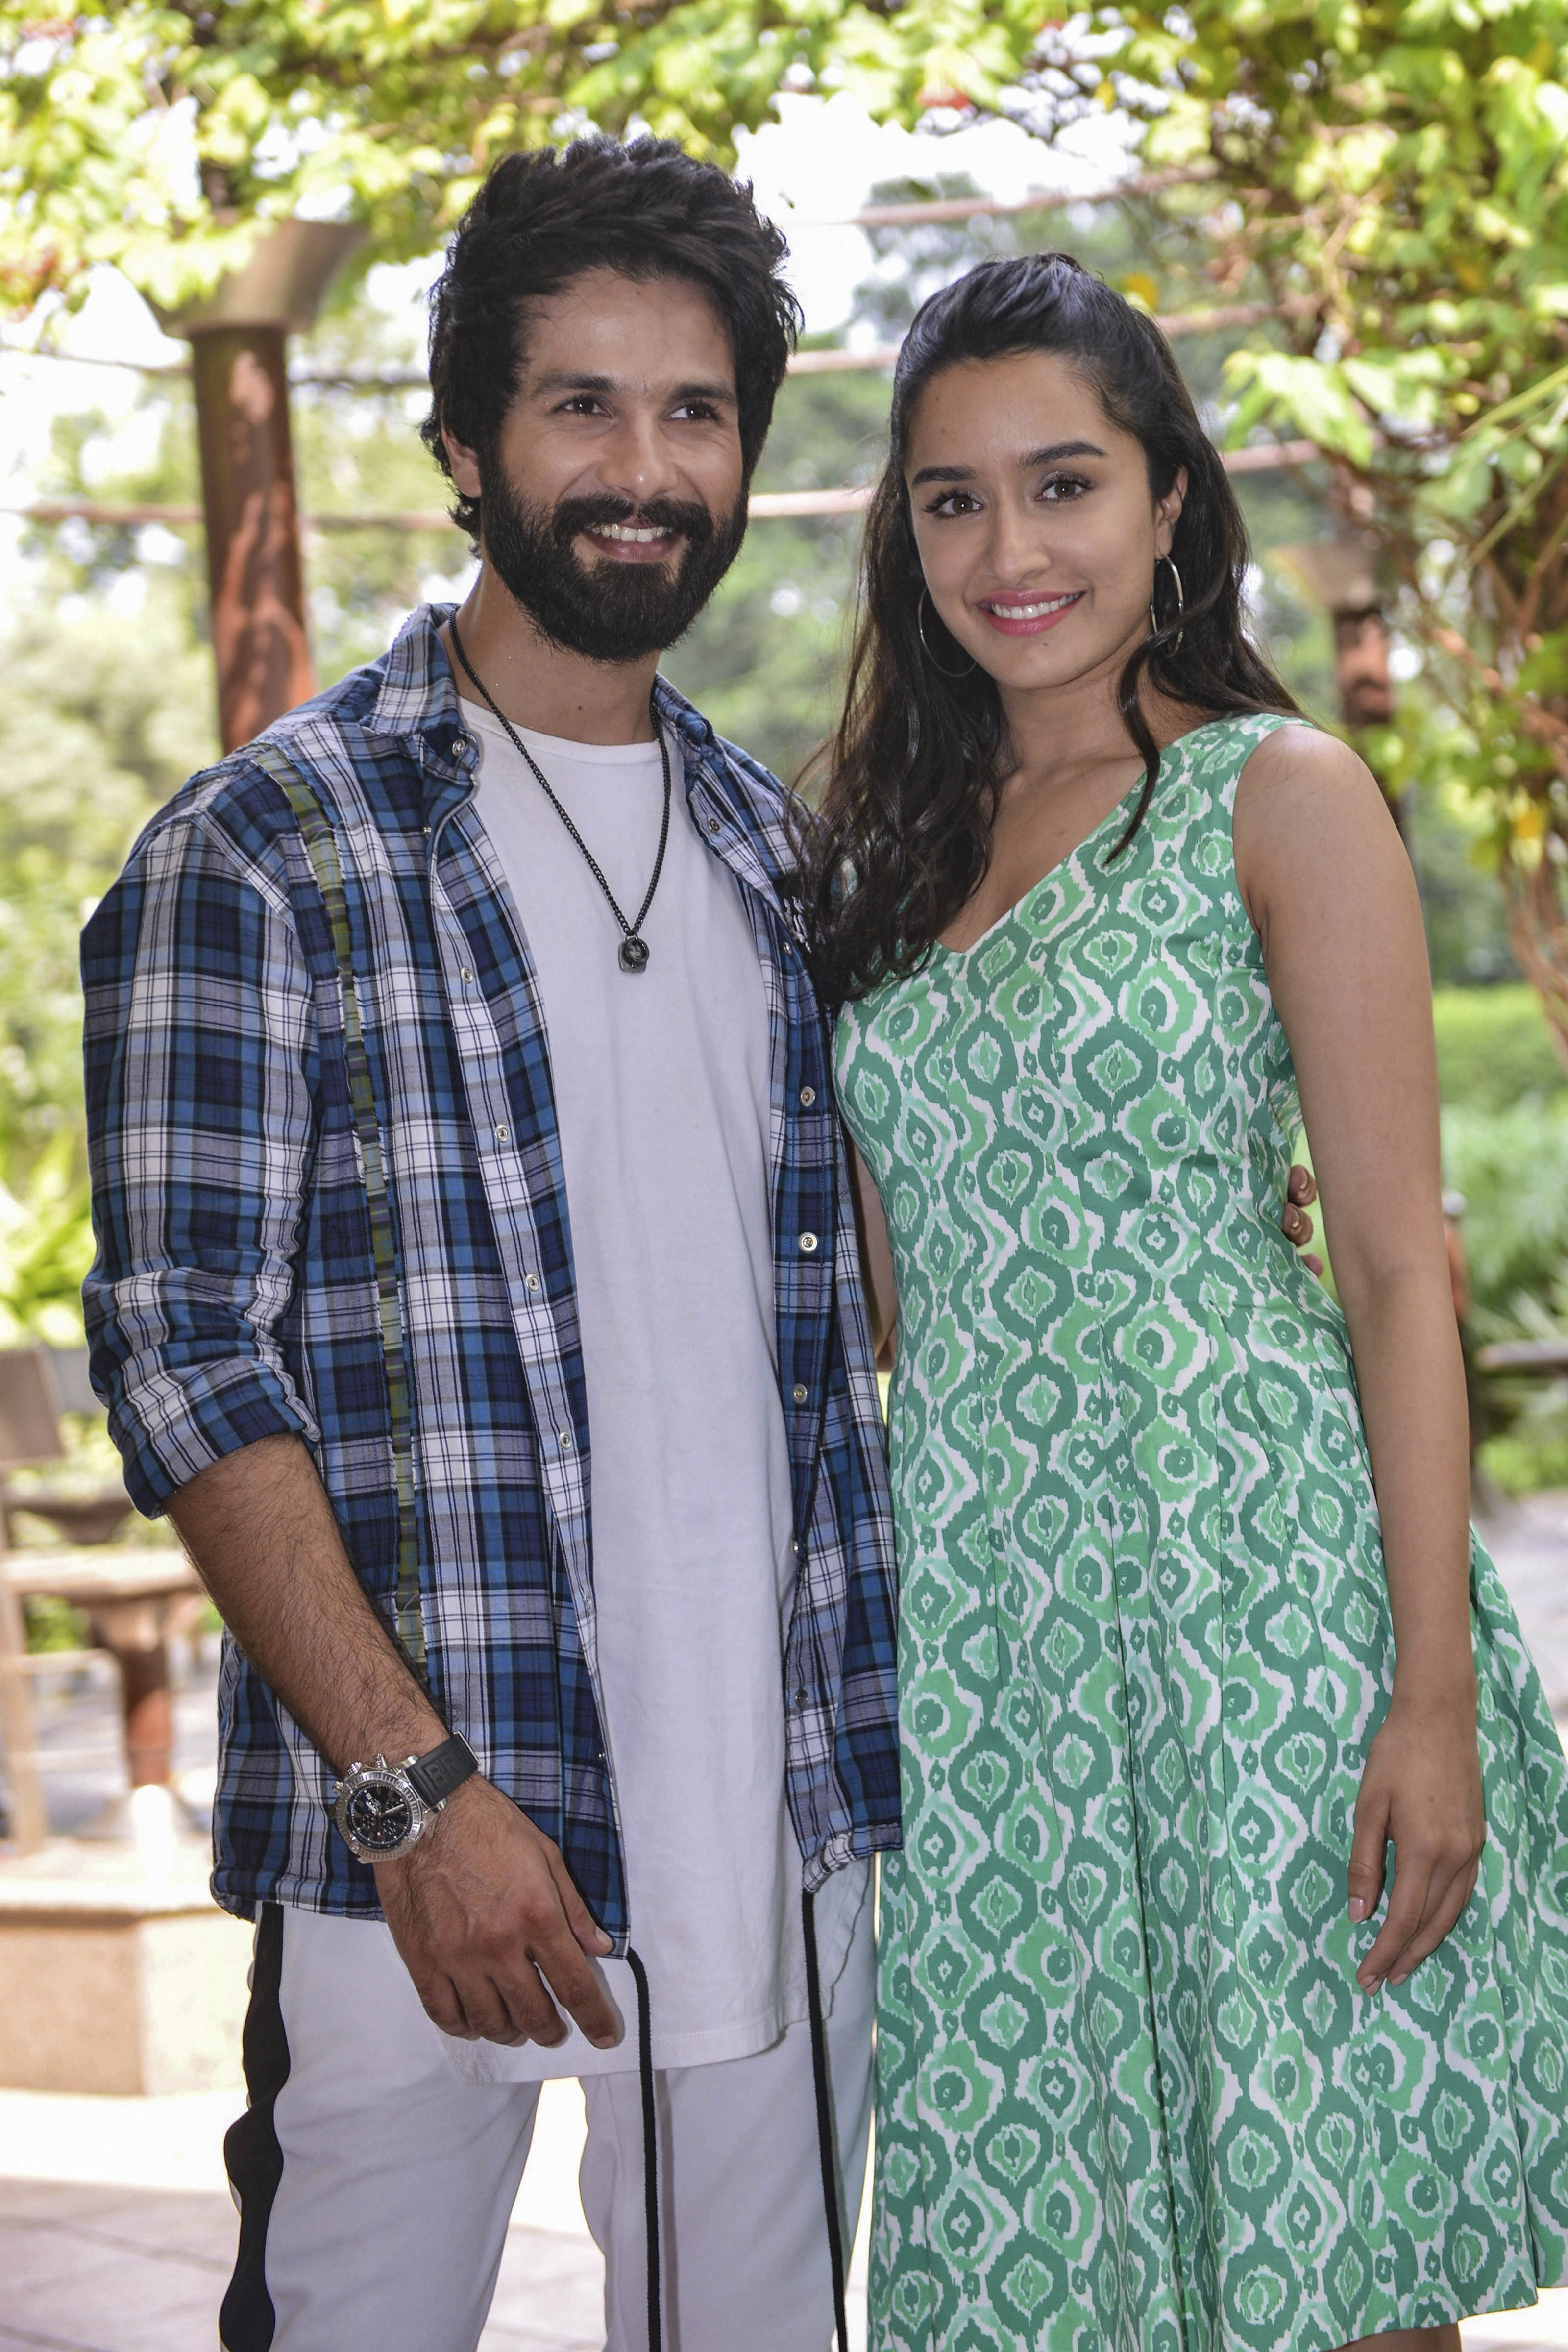 Bollywood actor Shahid Kapoor and Shraddha Kapoor pose for photo during a promotion from 'Batti Gul Meter Chalu', in New Delhi - PTI